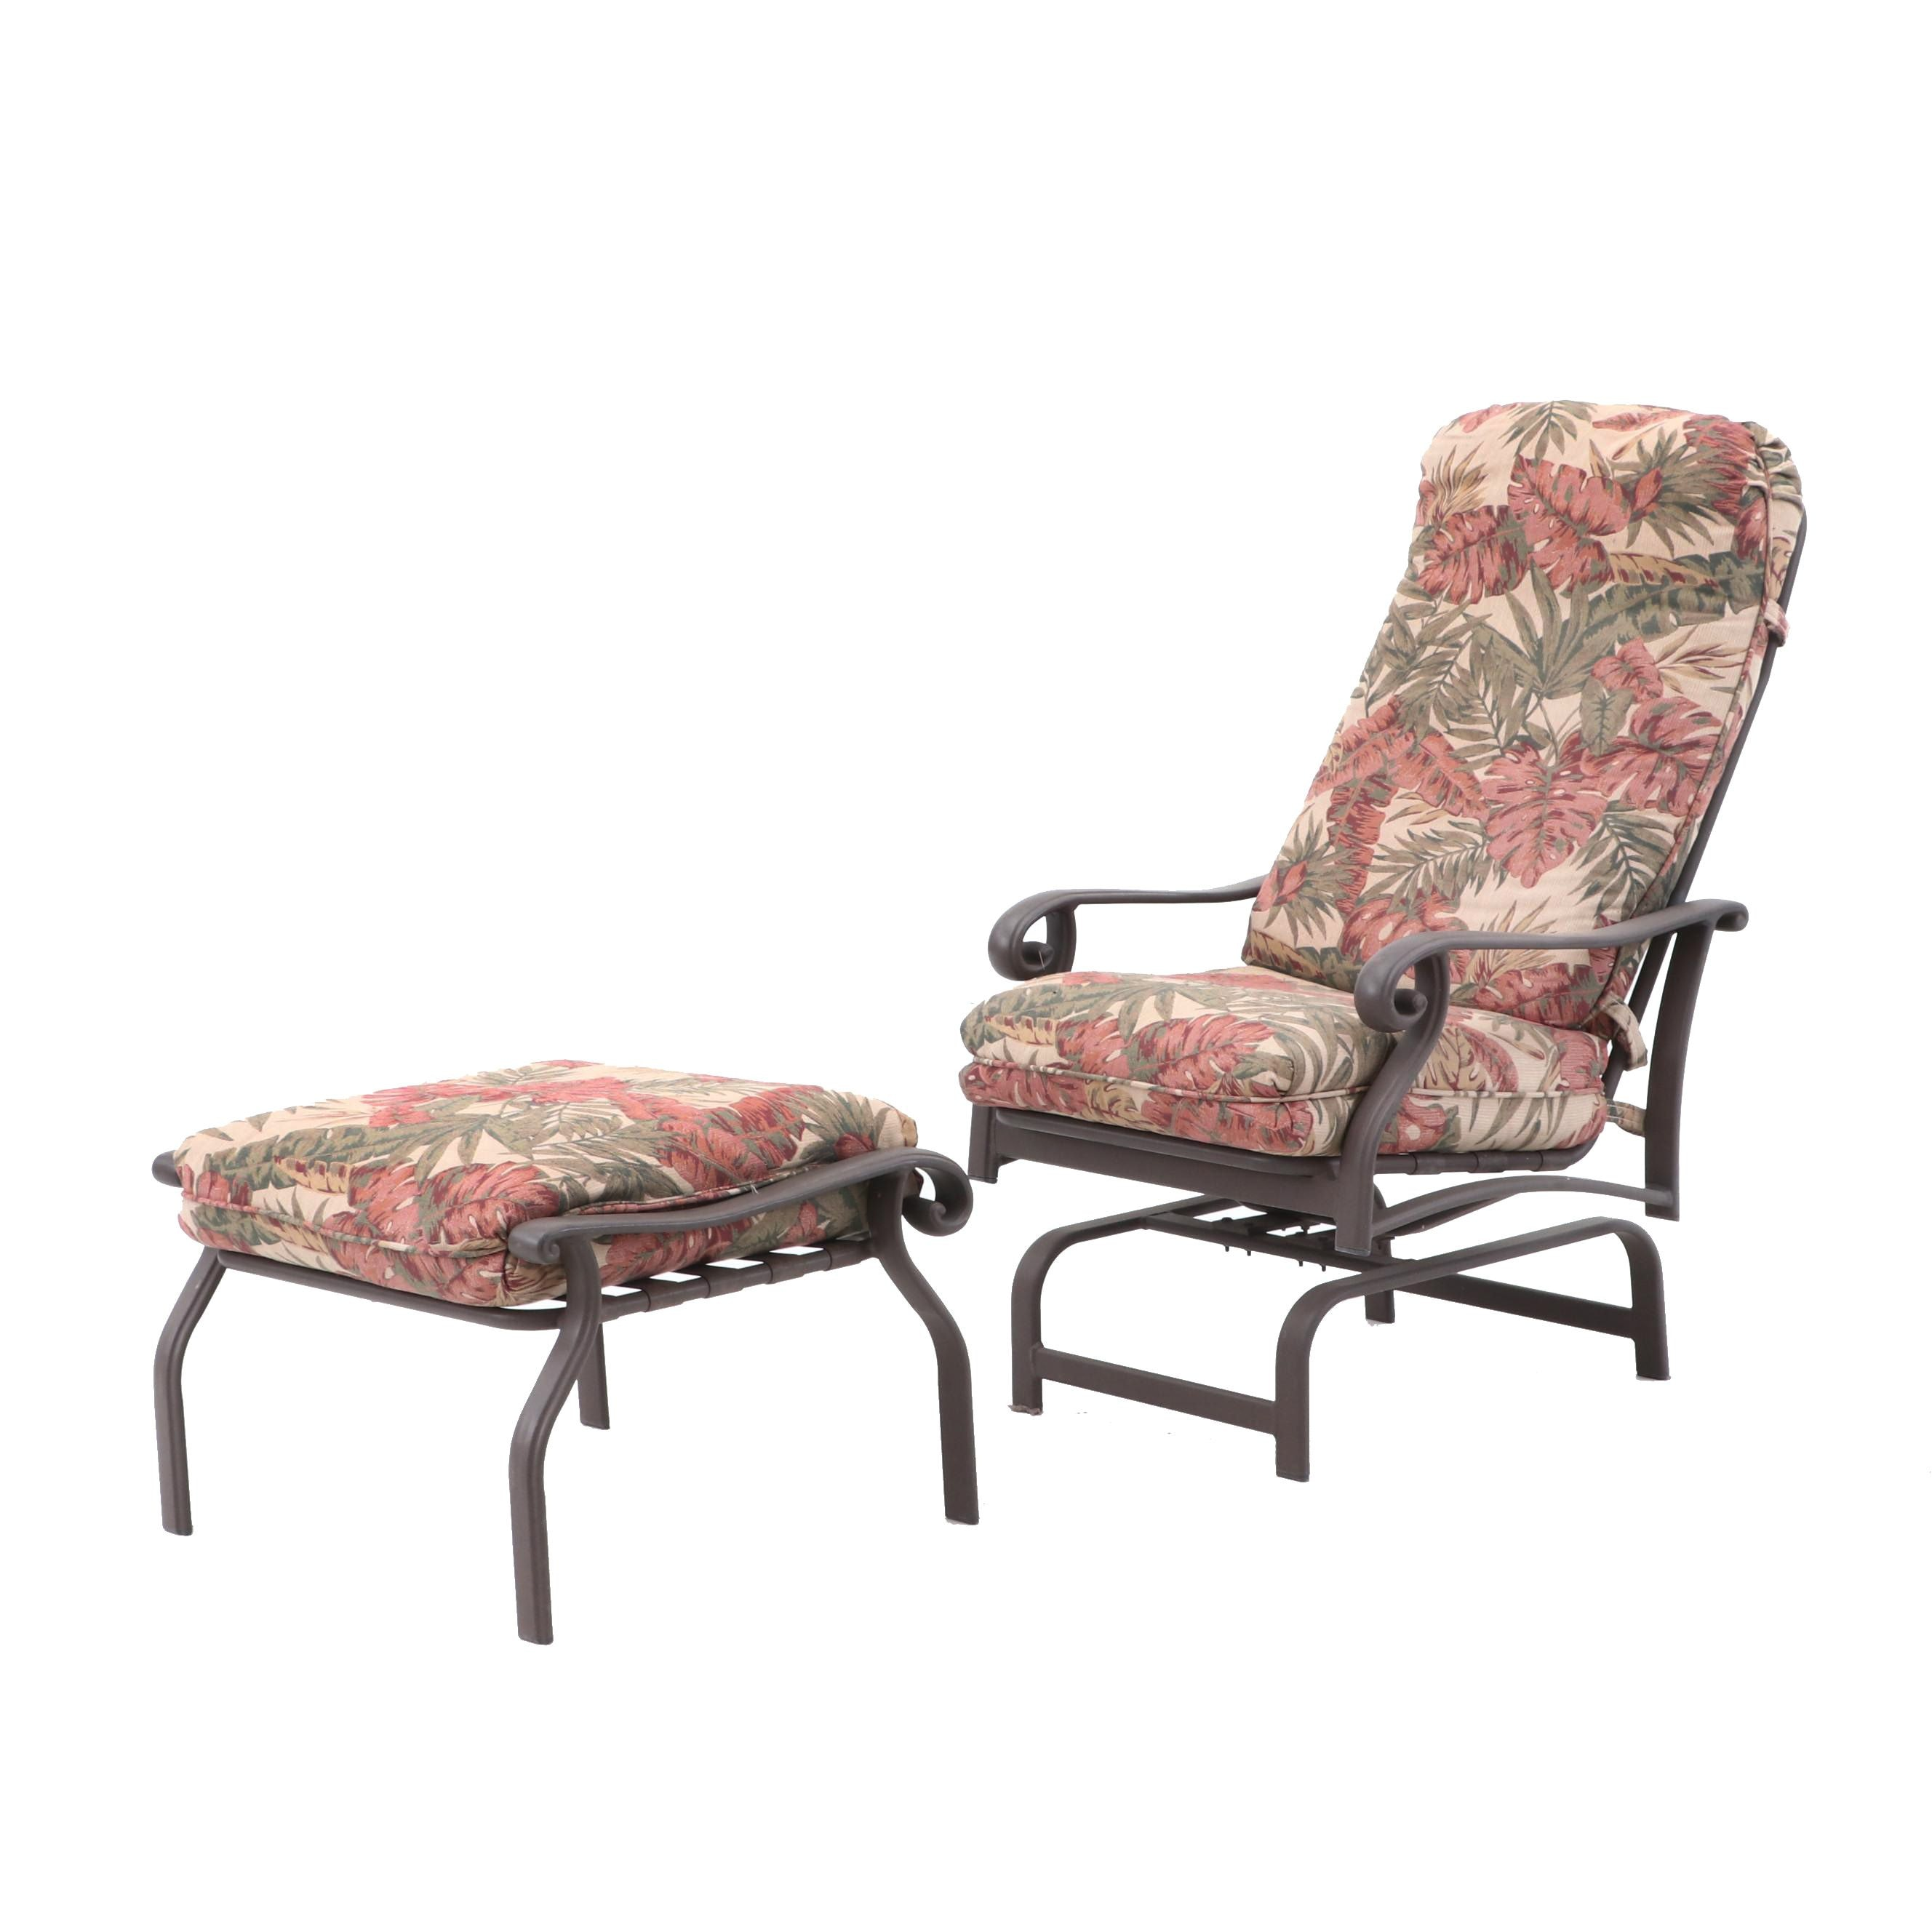 Patio Rocking Lounge Chair with Ottoman